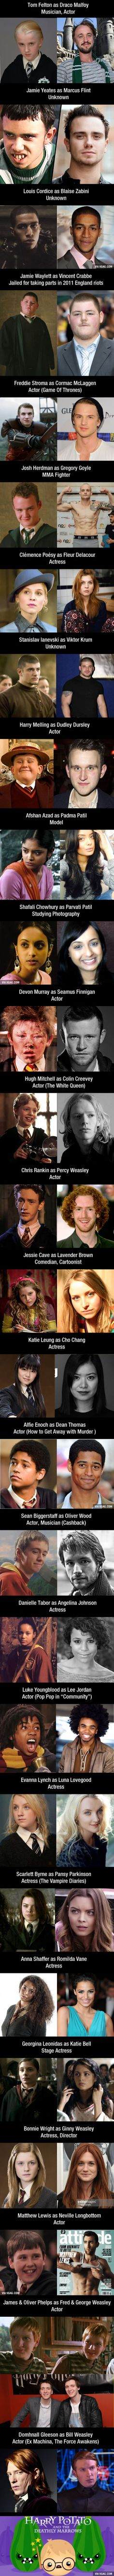 """Harry Potter"" Schoolmates: Then and Now"